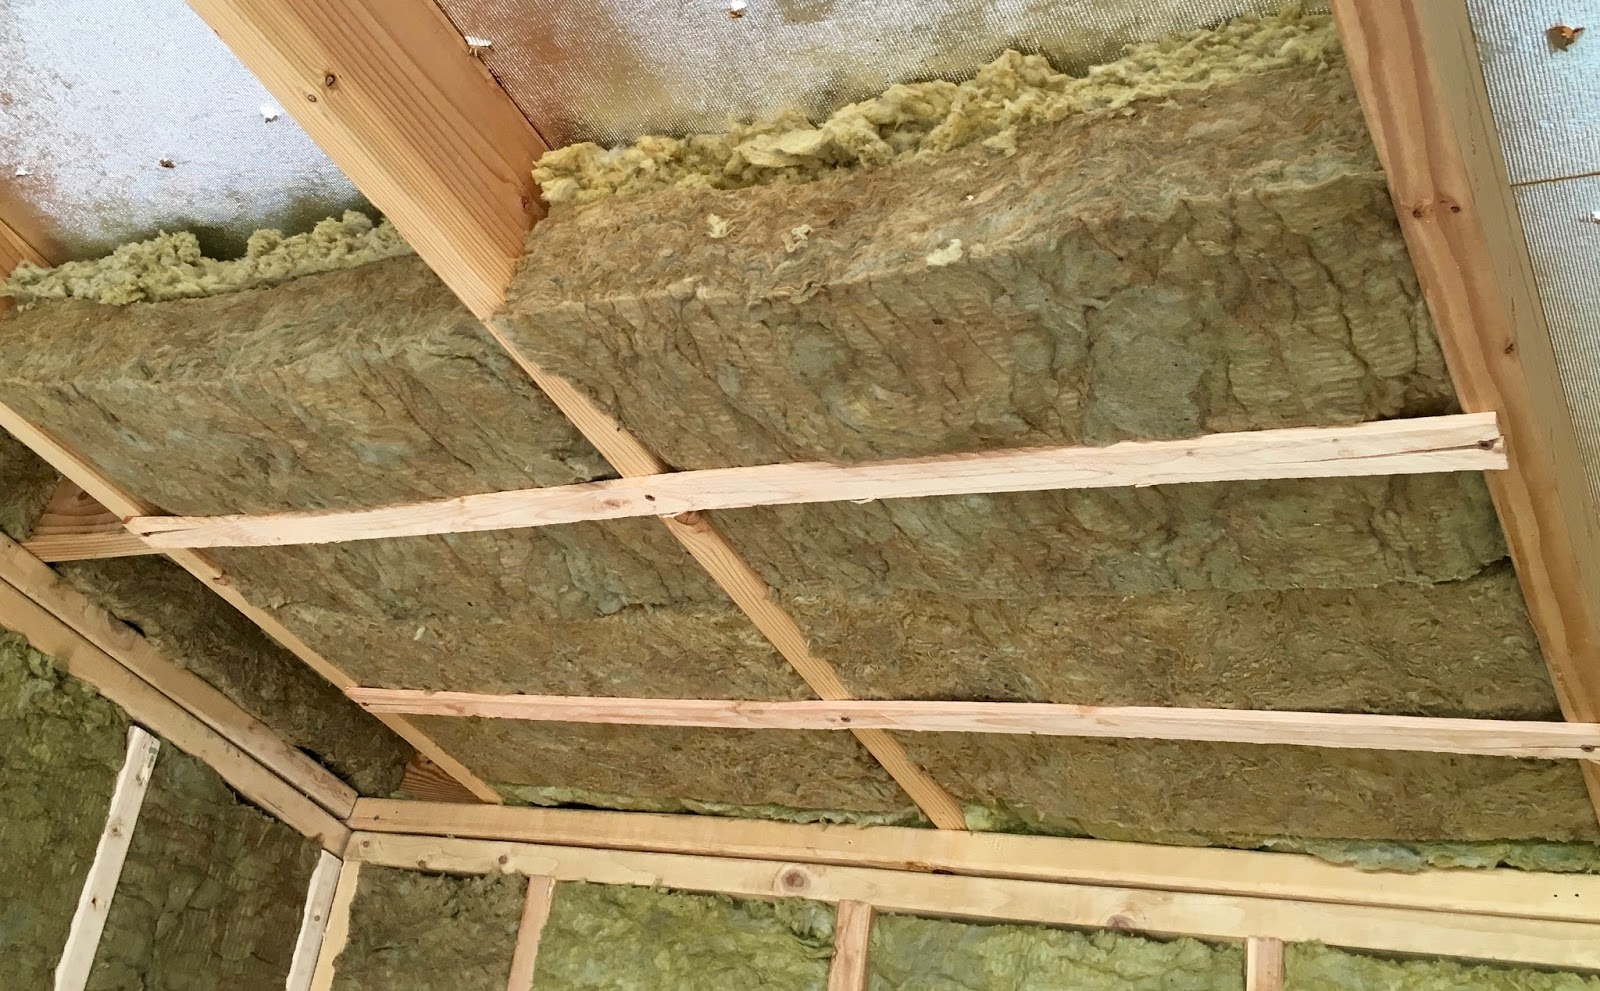 Syonyk S Project Blog Solar Shed Part 5 Roof Insulation